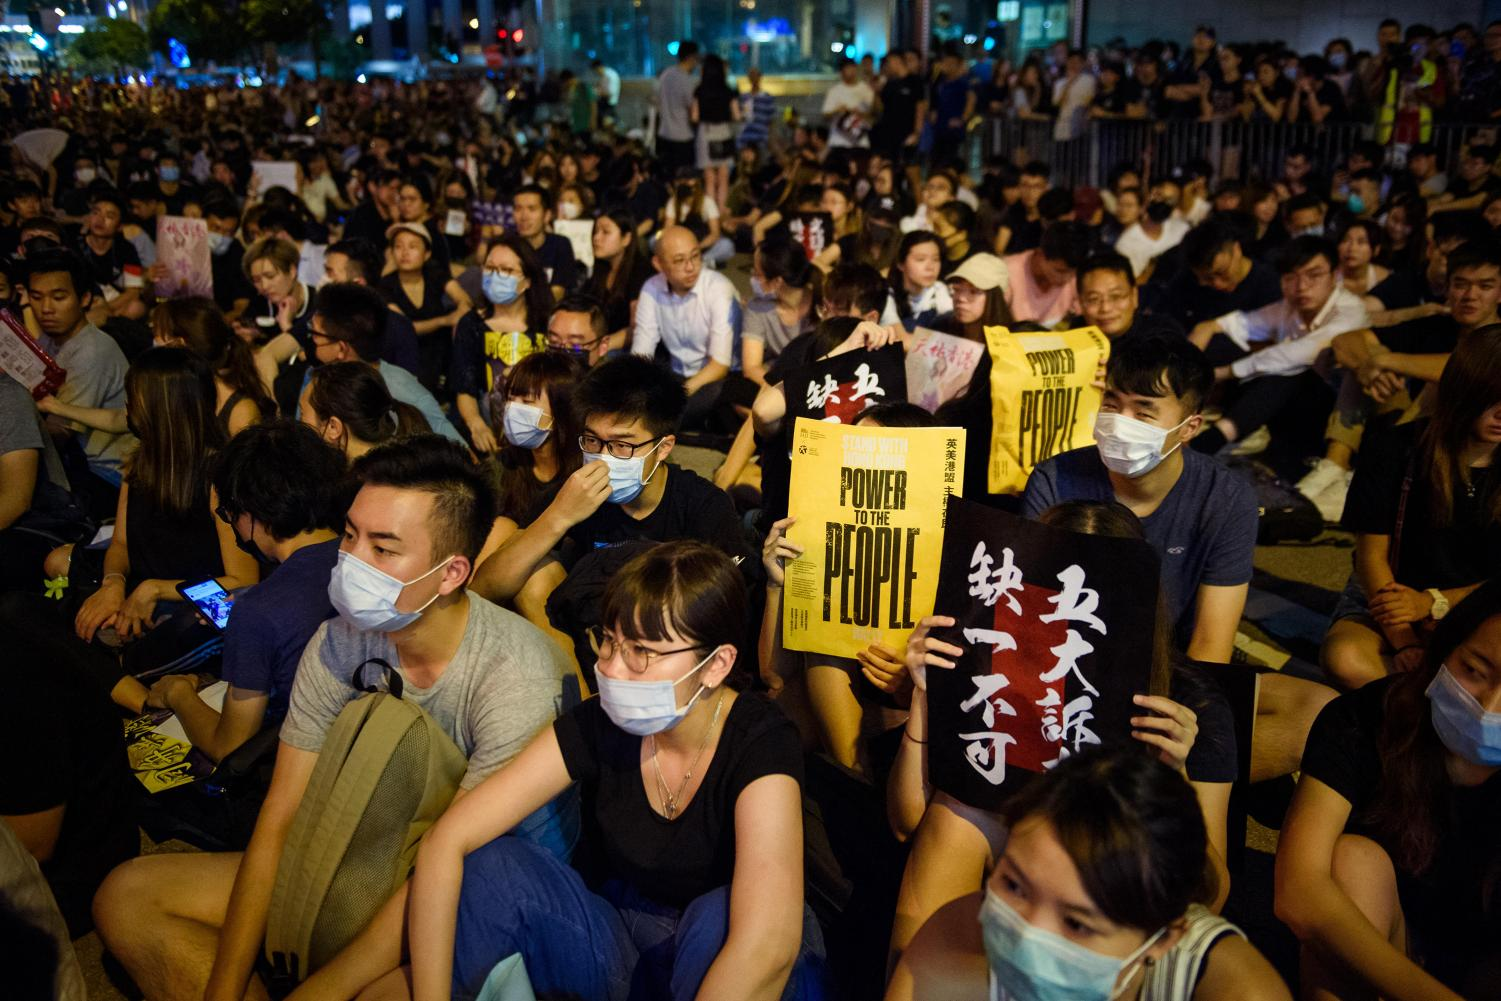 During a protest rally in front of the Chater Garden in the Central District, participants hold up signs with the inscription